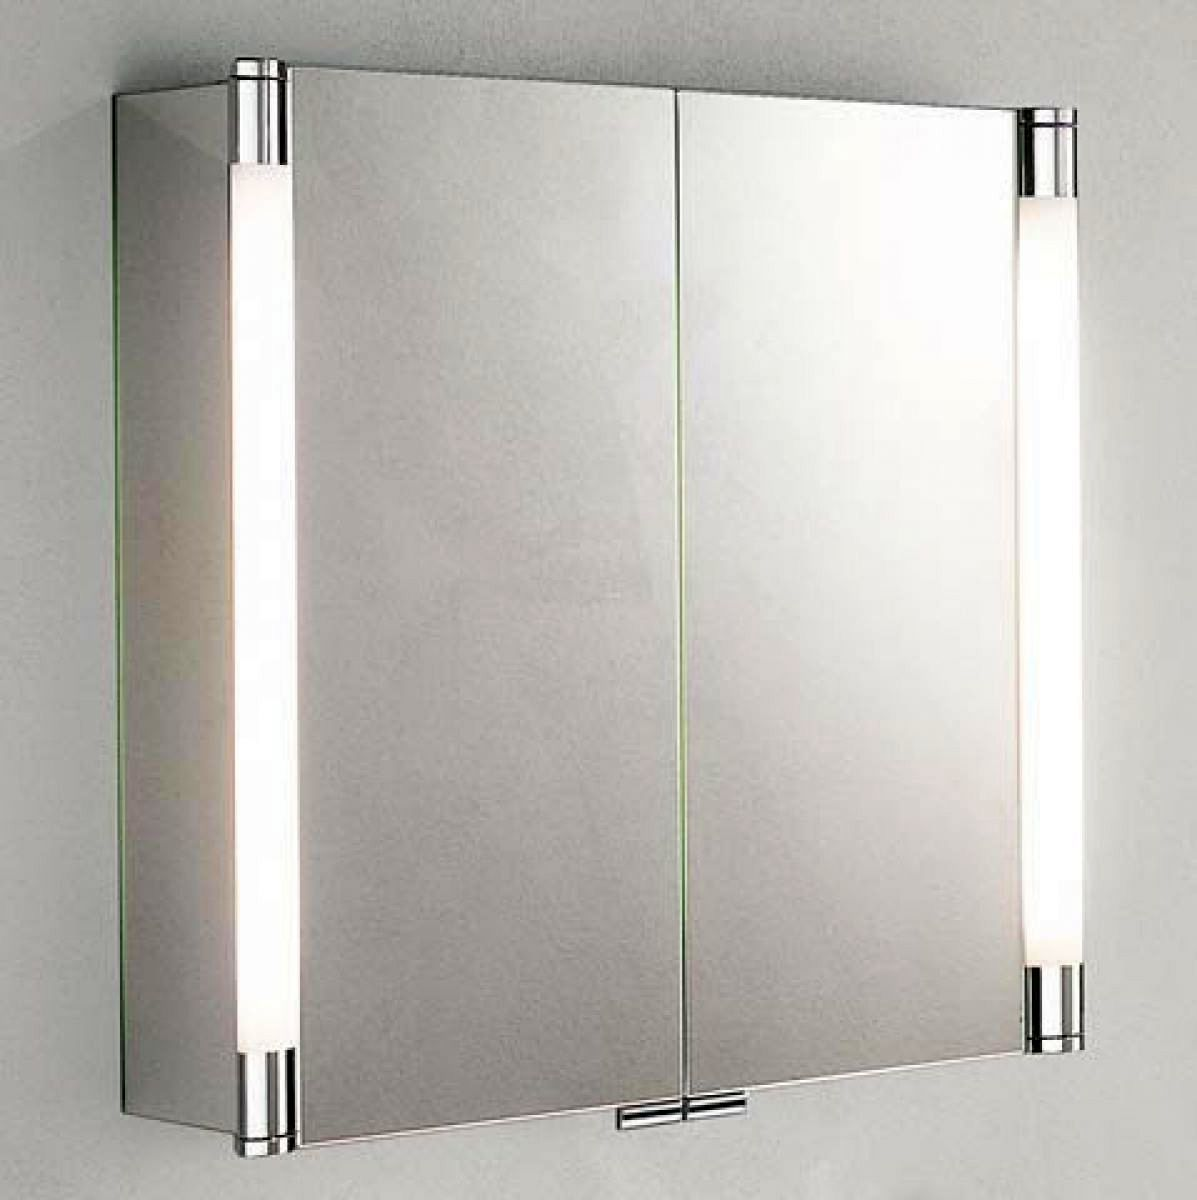 Bathroom Cabinets Keuco keuco royal t2 mirror cabinet : uk bathrooms